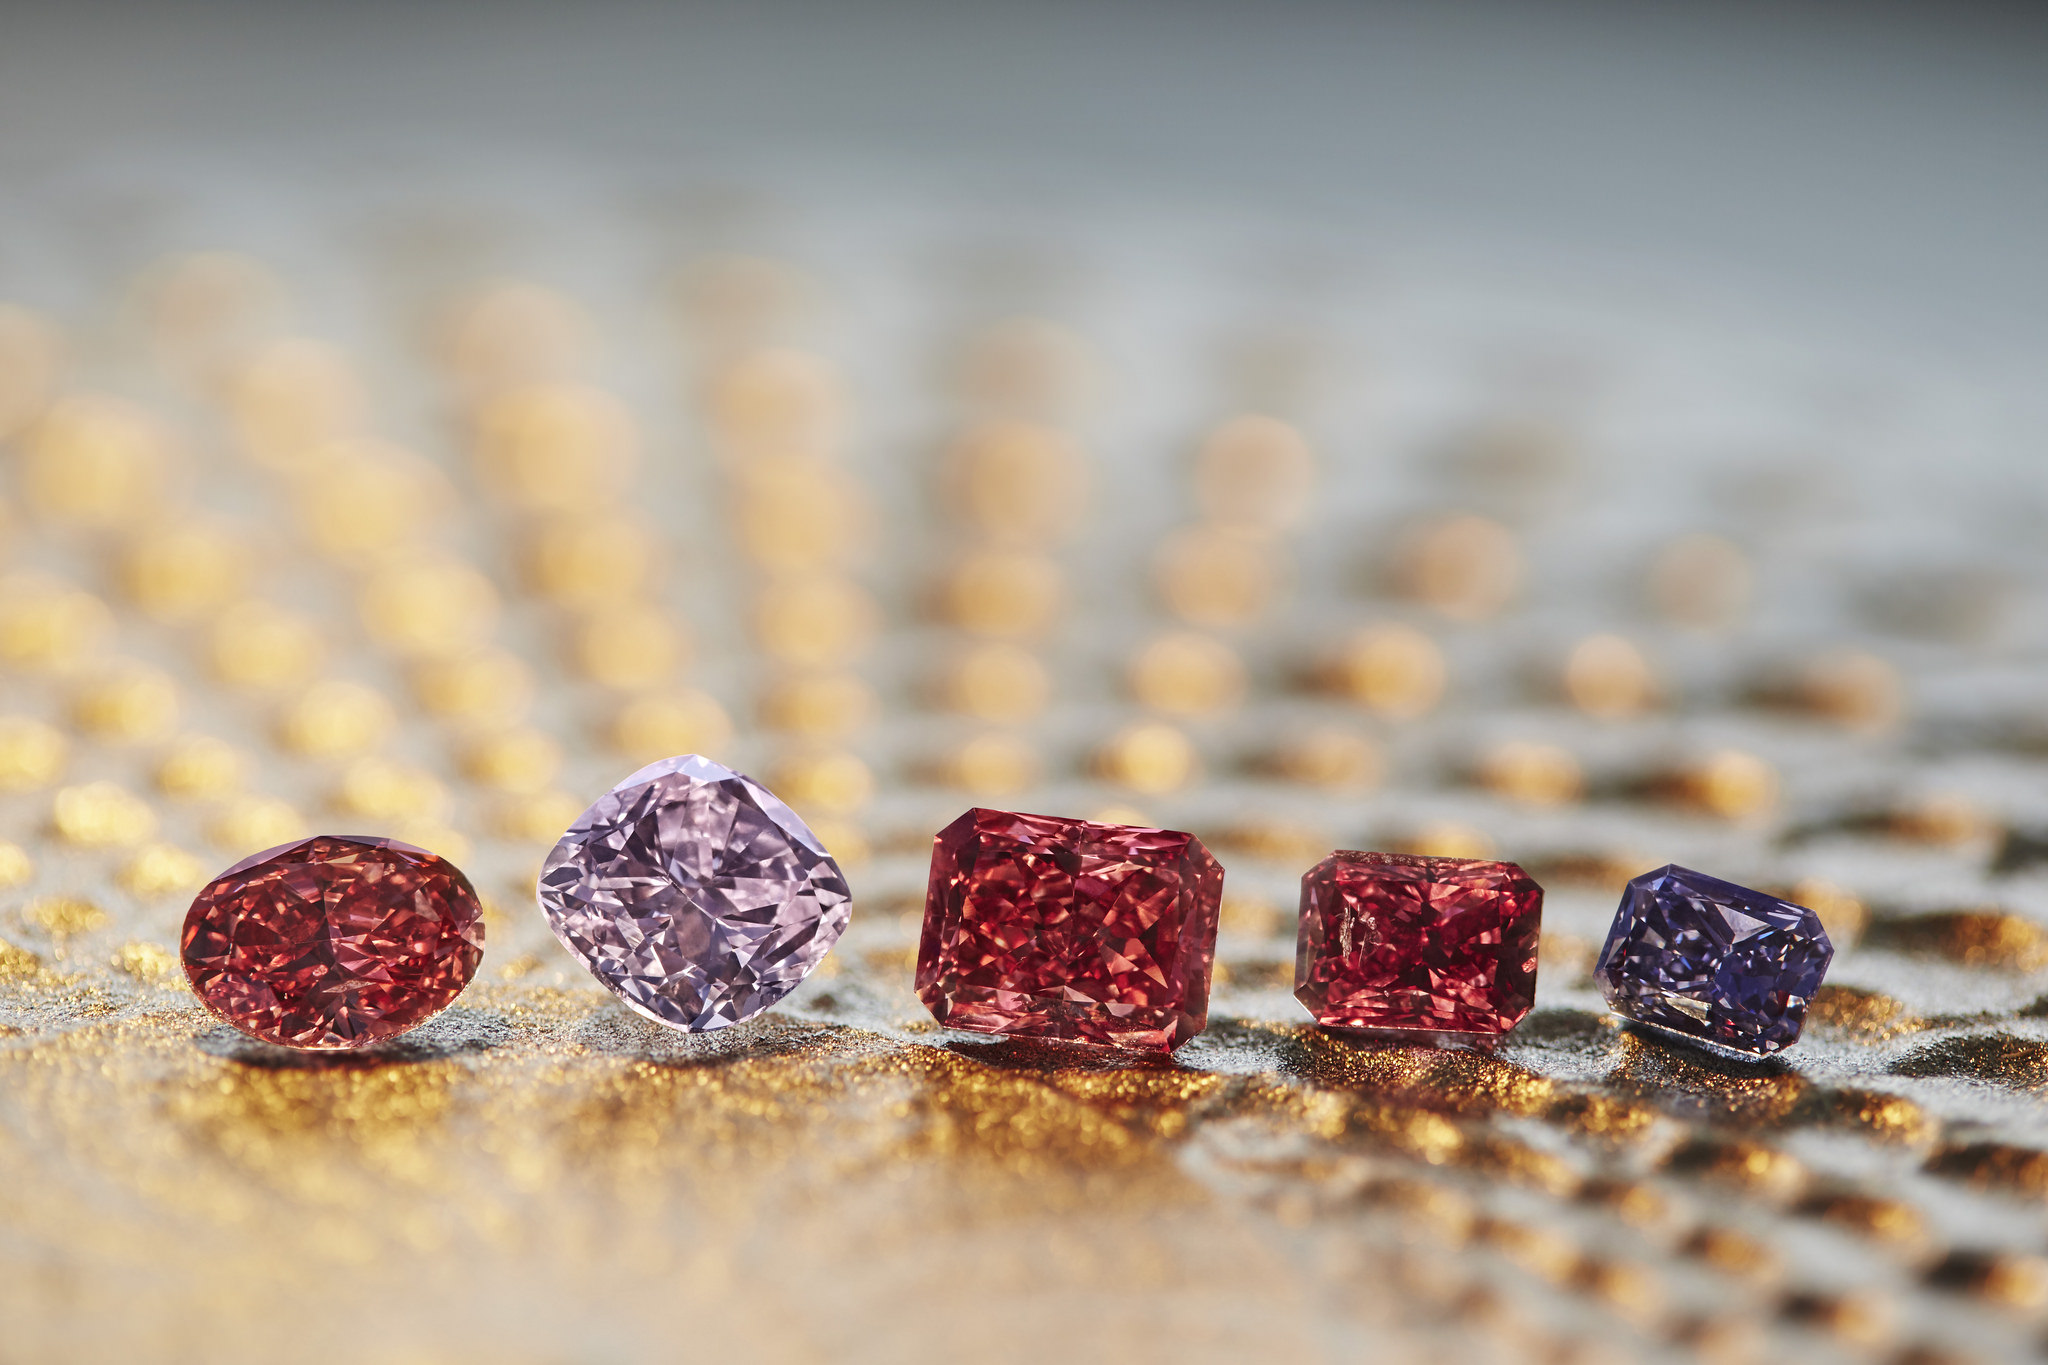 2017 Argyle Pink Diamonds Tender. The 58 diamonds in the 2017 tender weigh a total of 49.39 carats, including four Fancy Red diamonds, four Purplish Red diamonds, two Violet diamonds, and one Blue diamond. Image: Rio Tinto